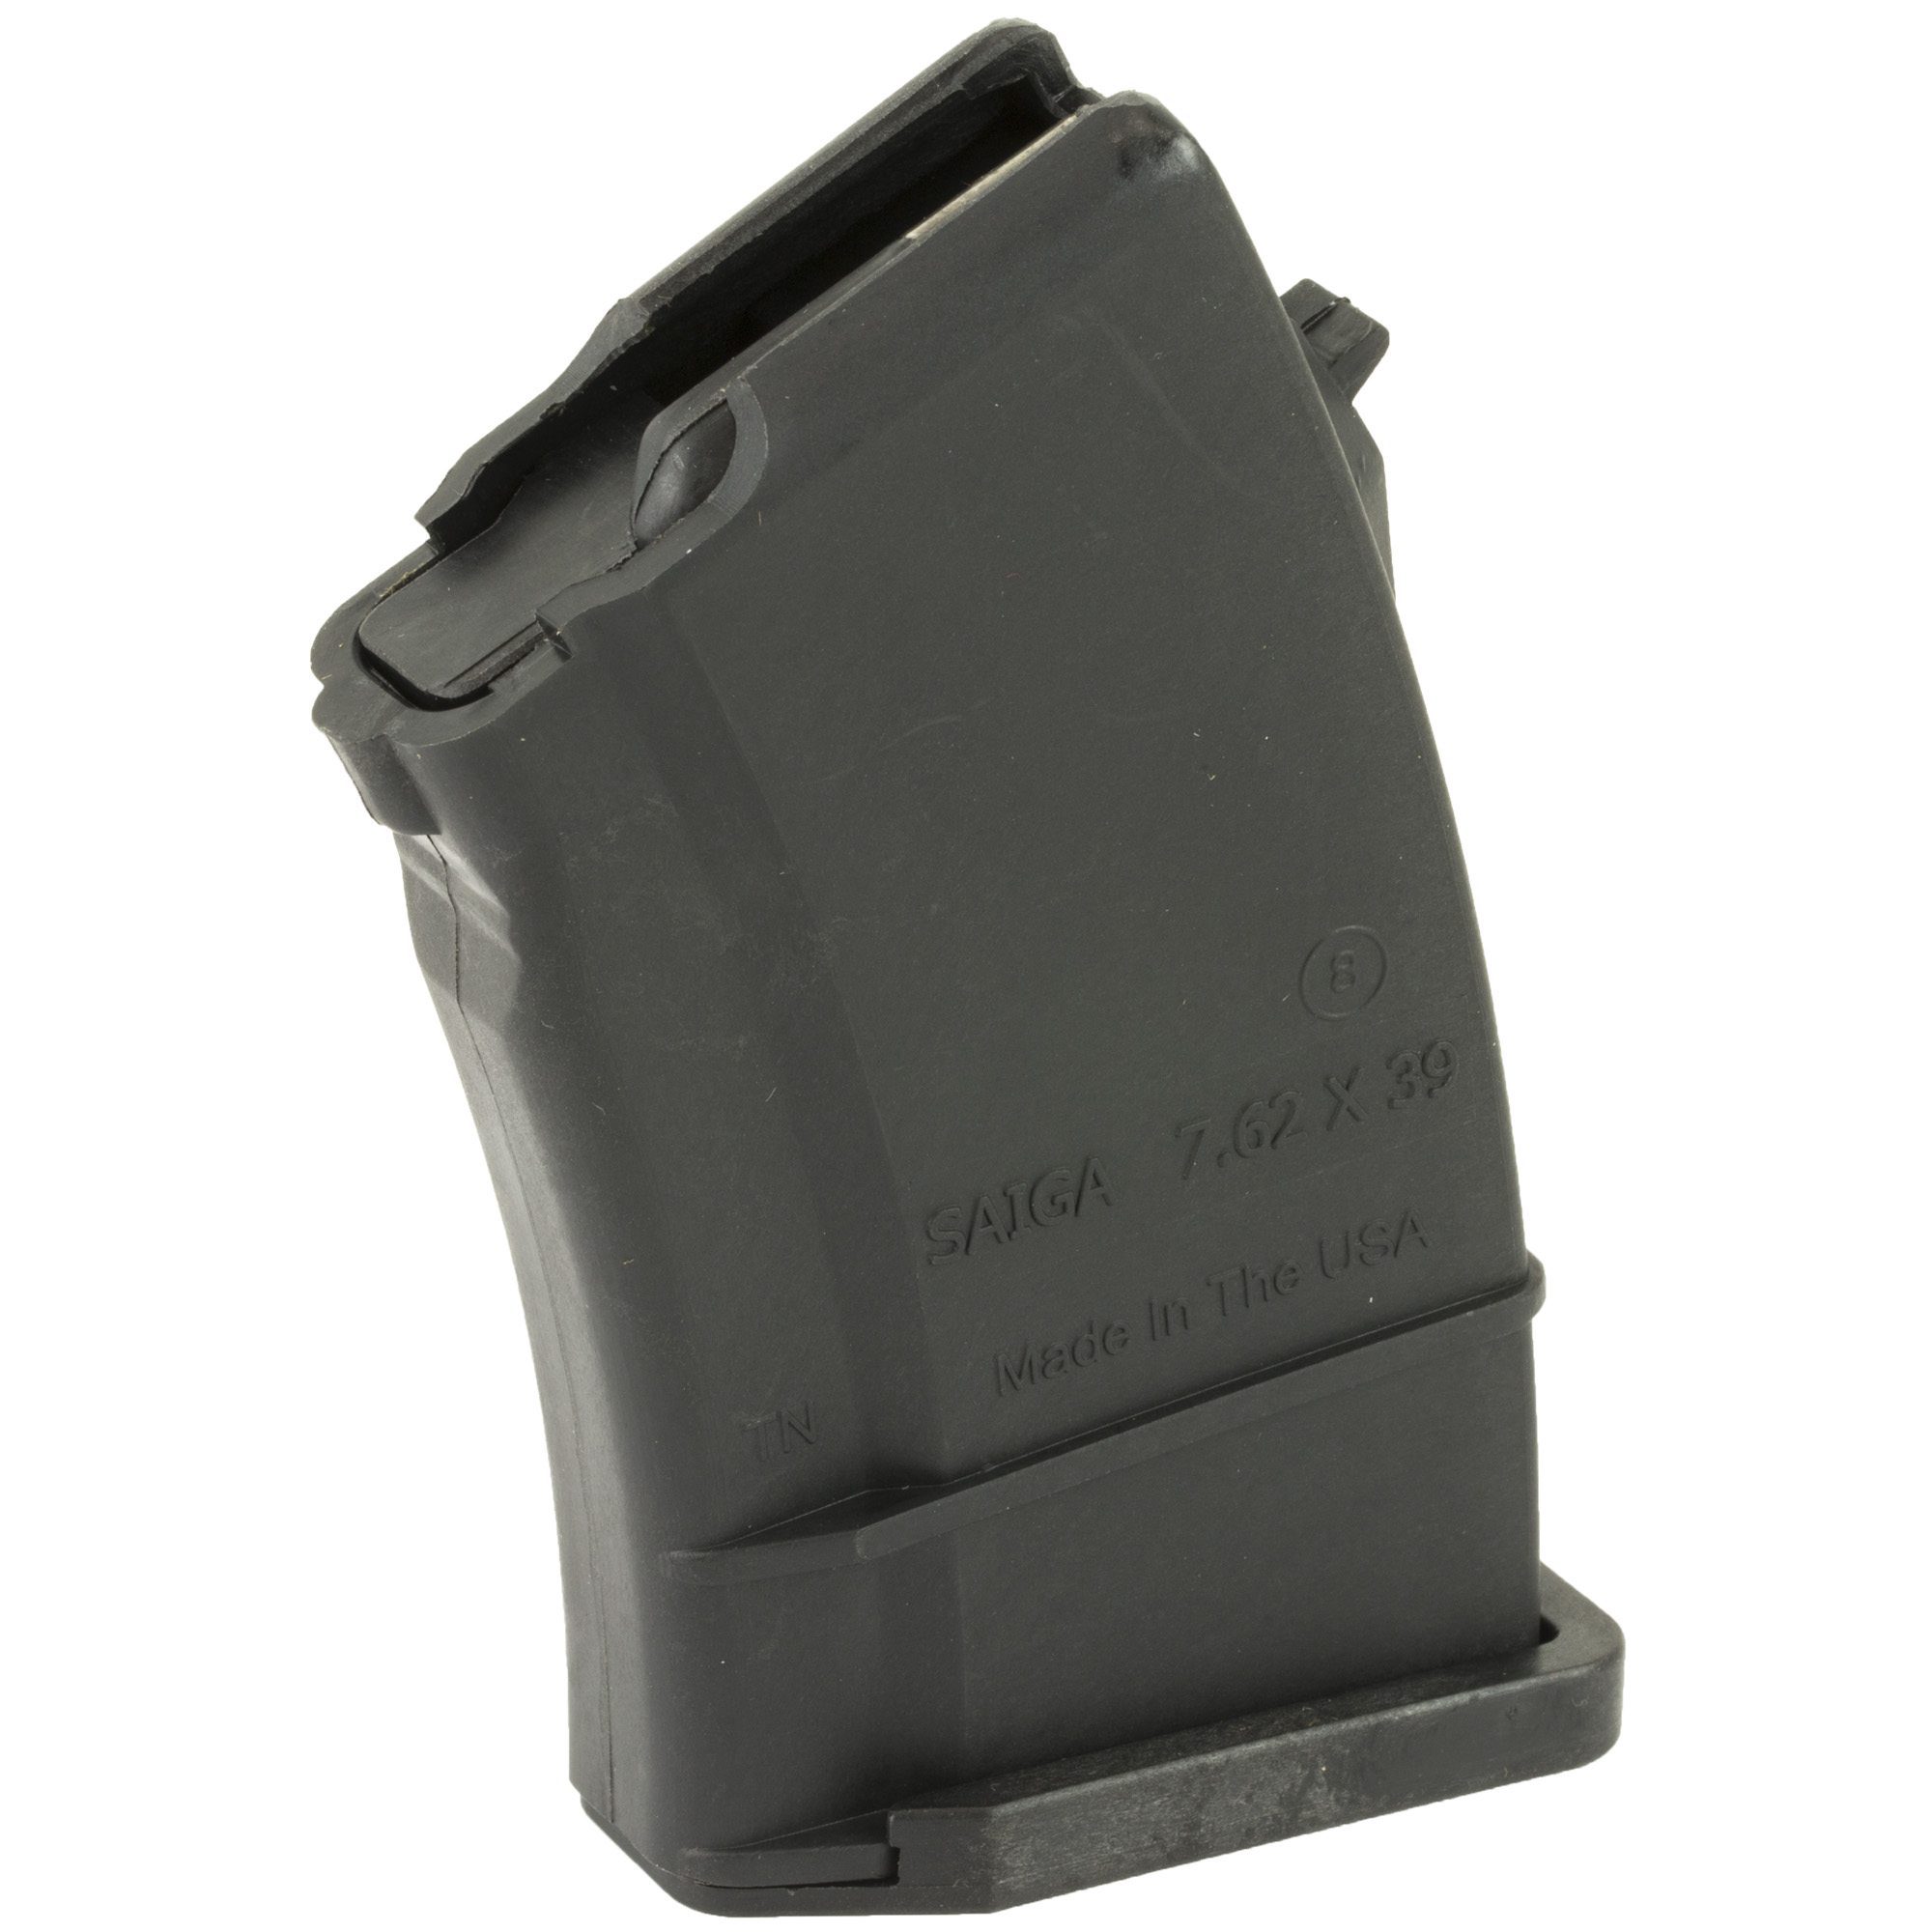 SGM Tactical magazines feature high quality components and precise manufacturing that will ensure long-lasting performance and reliability.